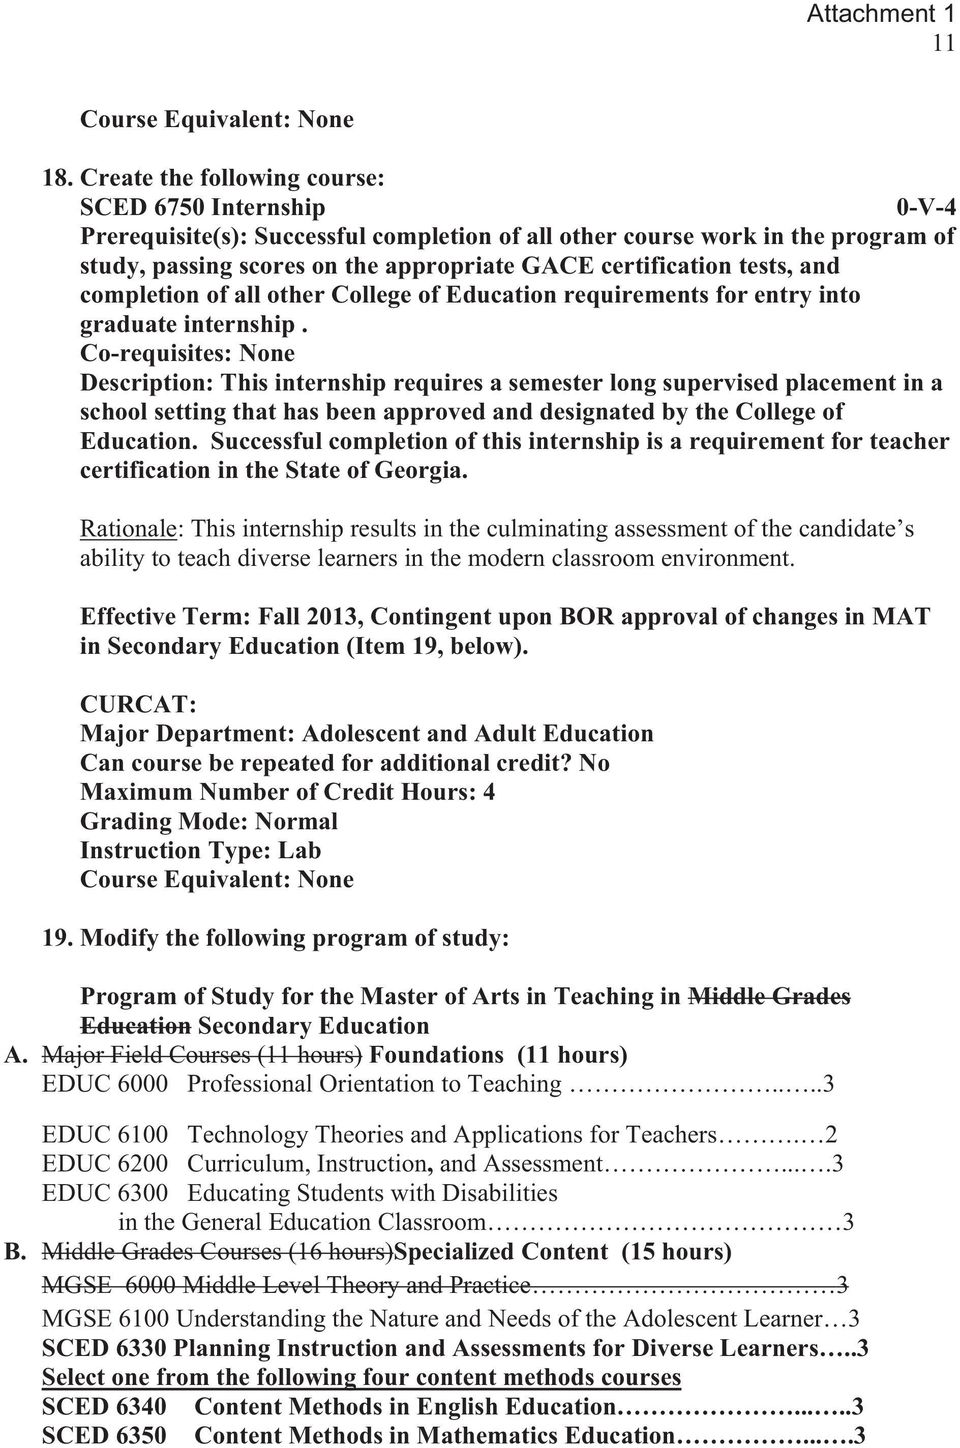 tests, and completion of all other College of Education requirements for entry into graduate internship.